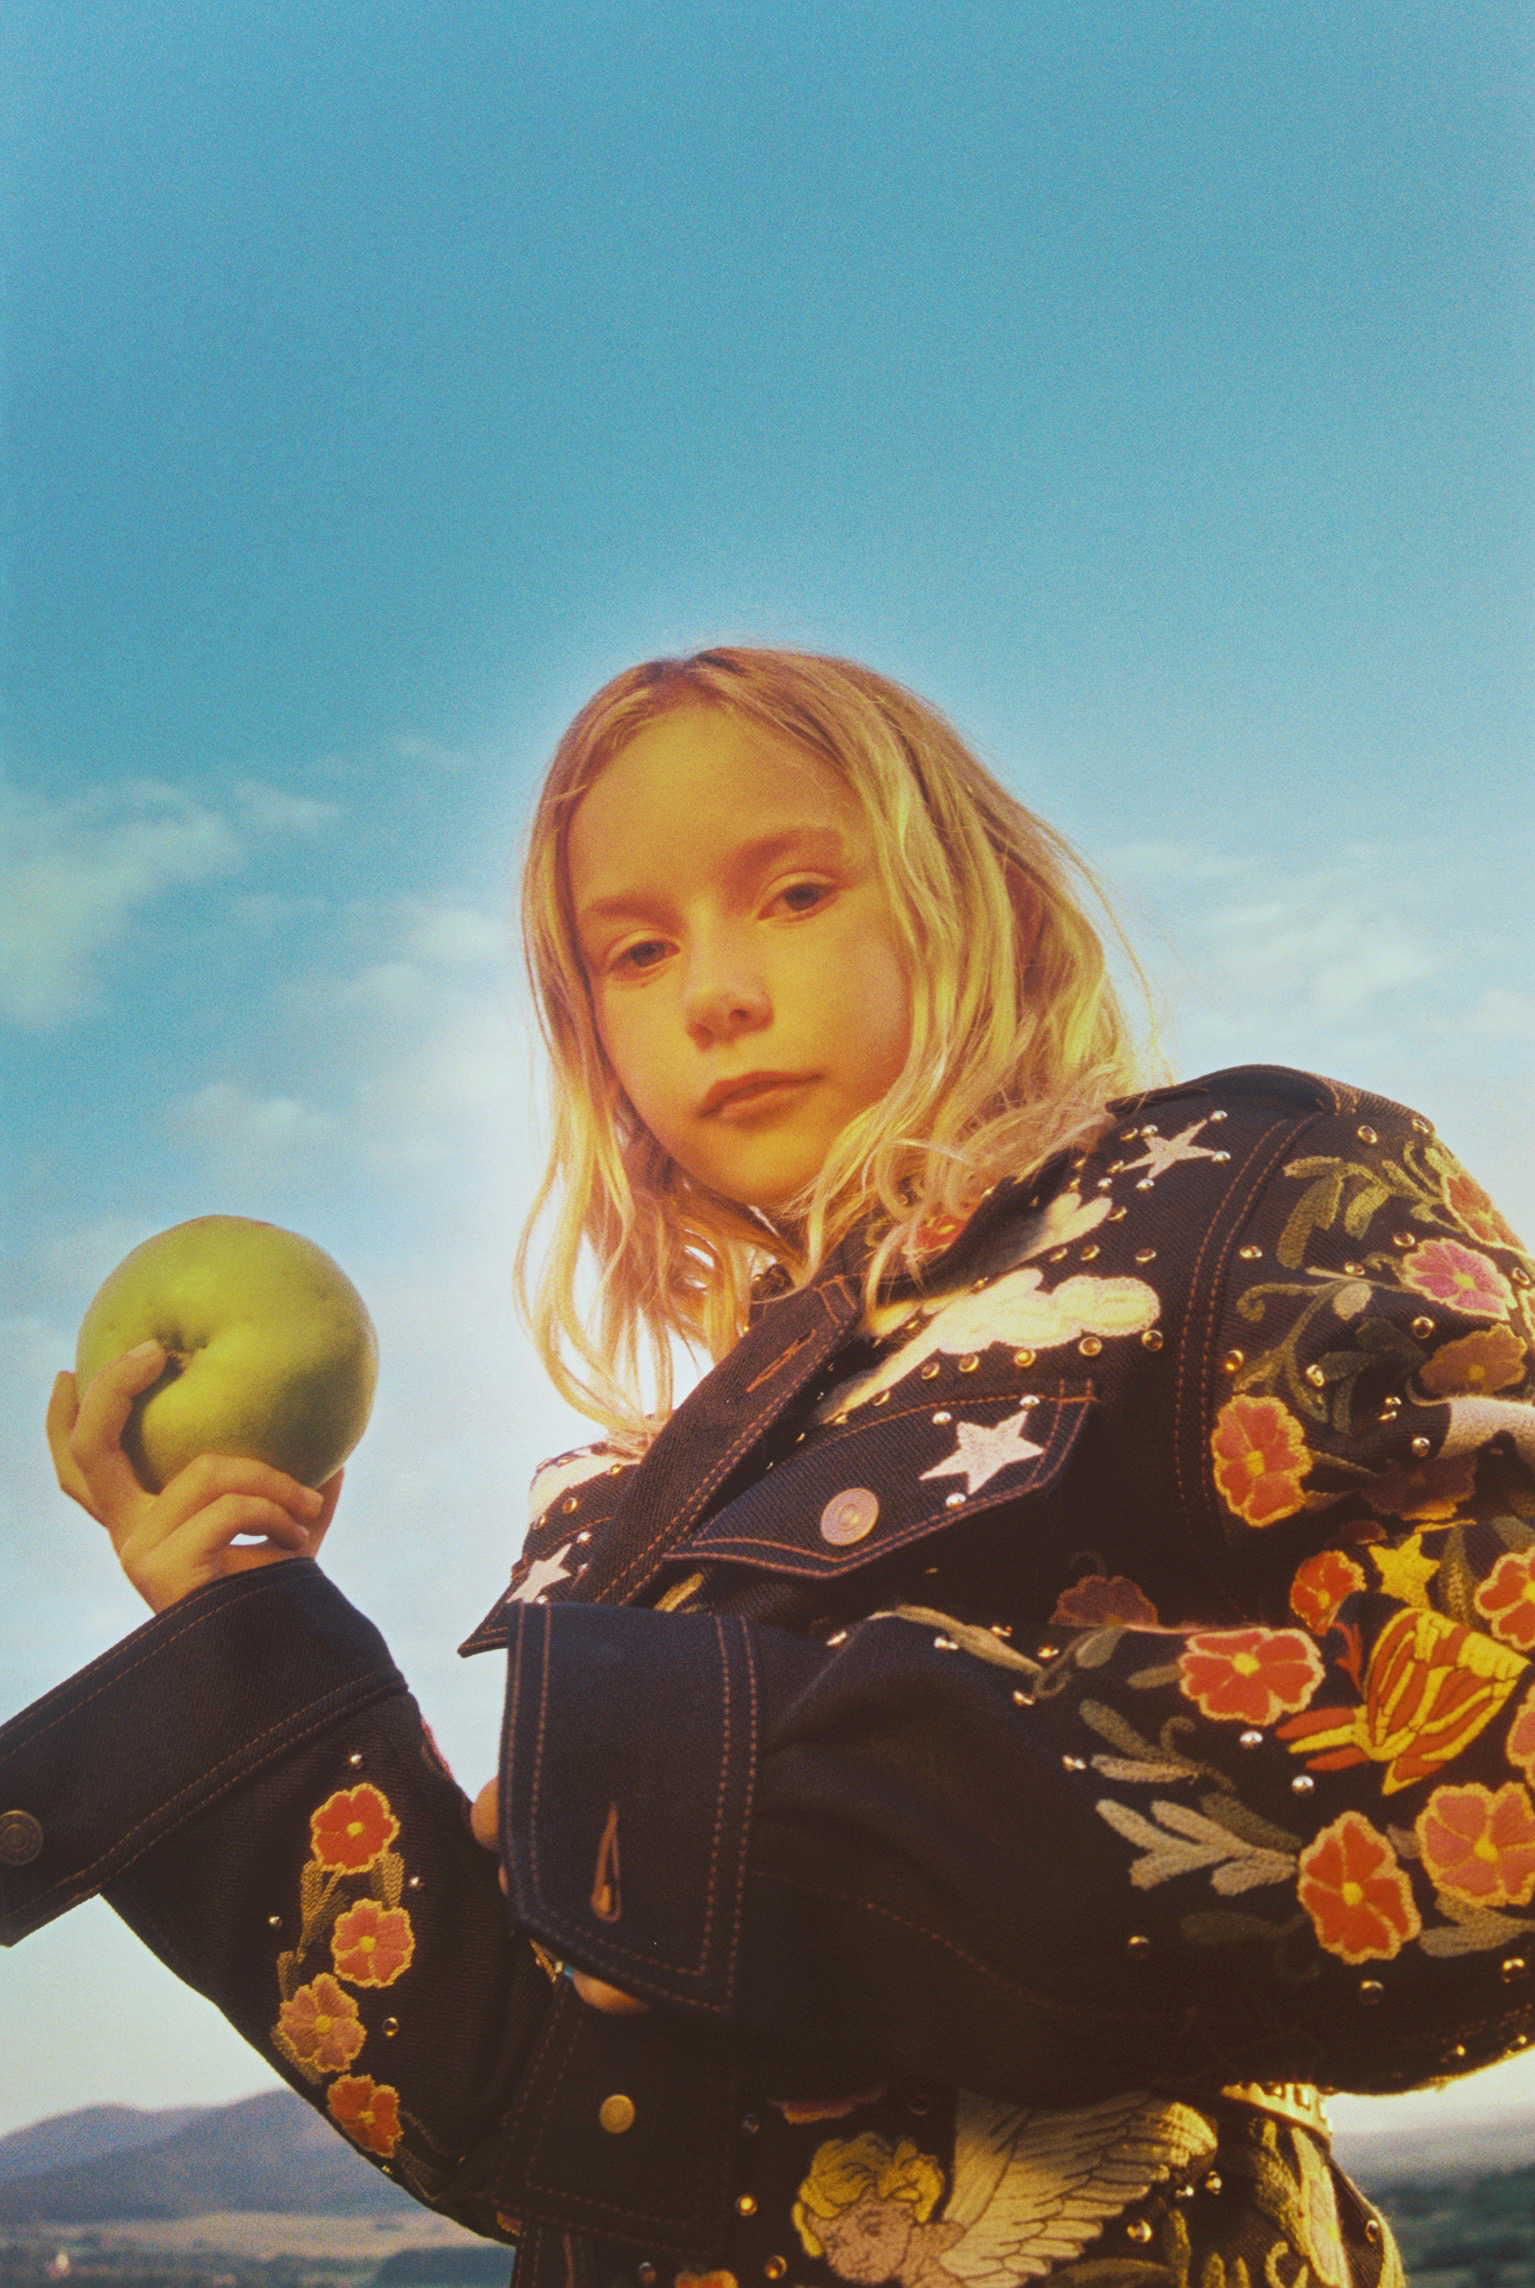 petra-collins-coming-of-age-4.jpg